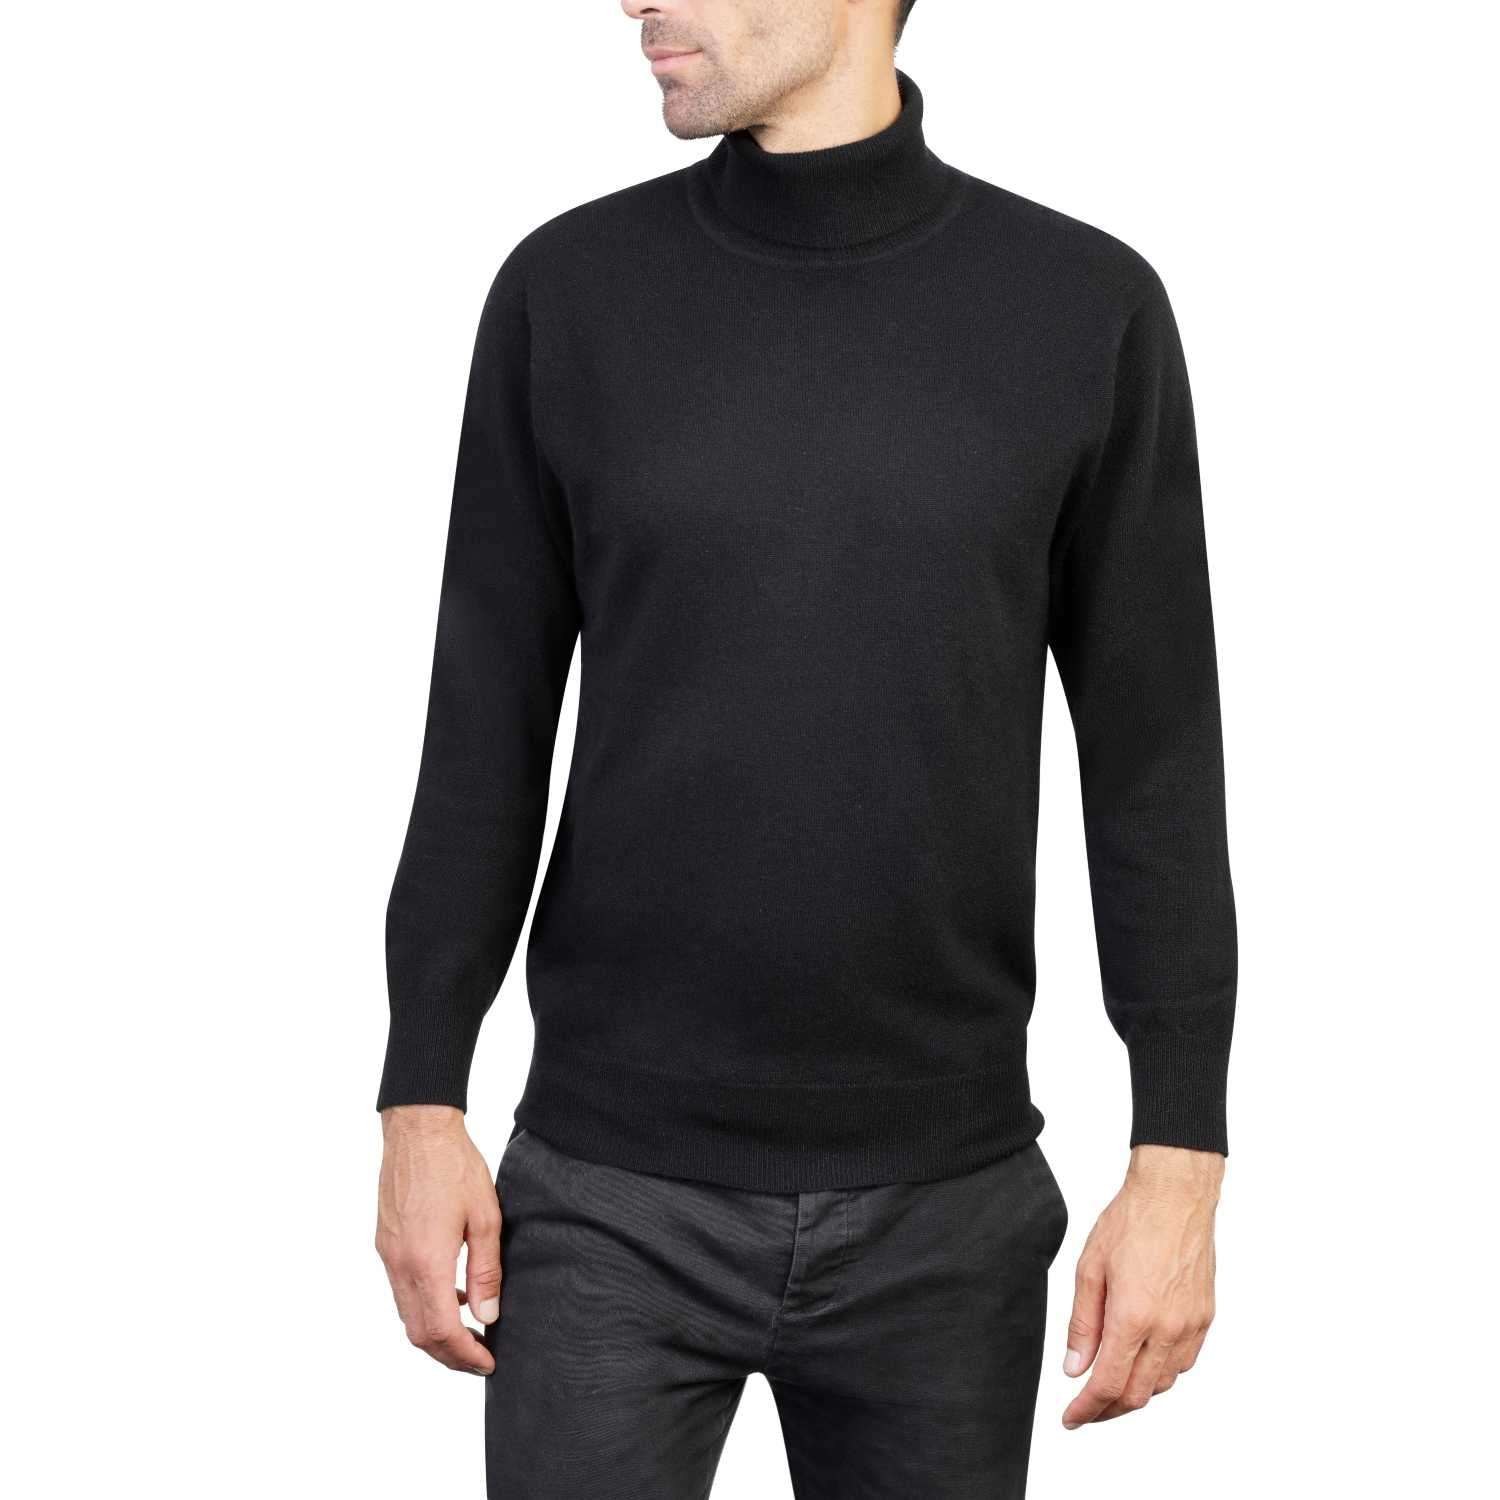 Mens Black Cashmere Polo Neck Sweater | Front | Shop at The Cashmere Choice | London